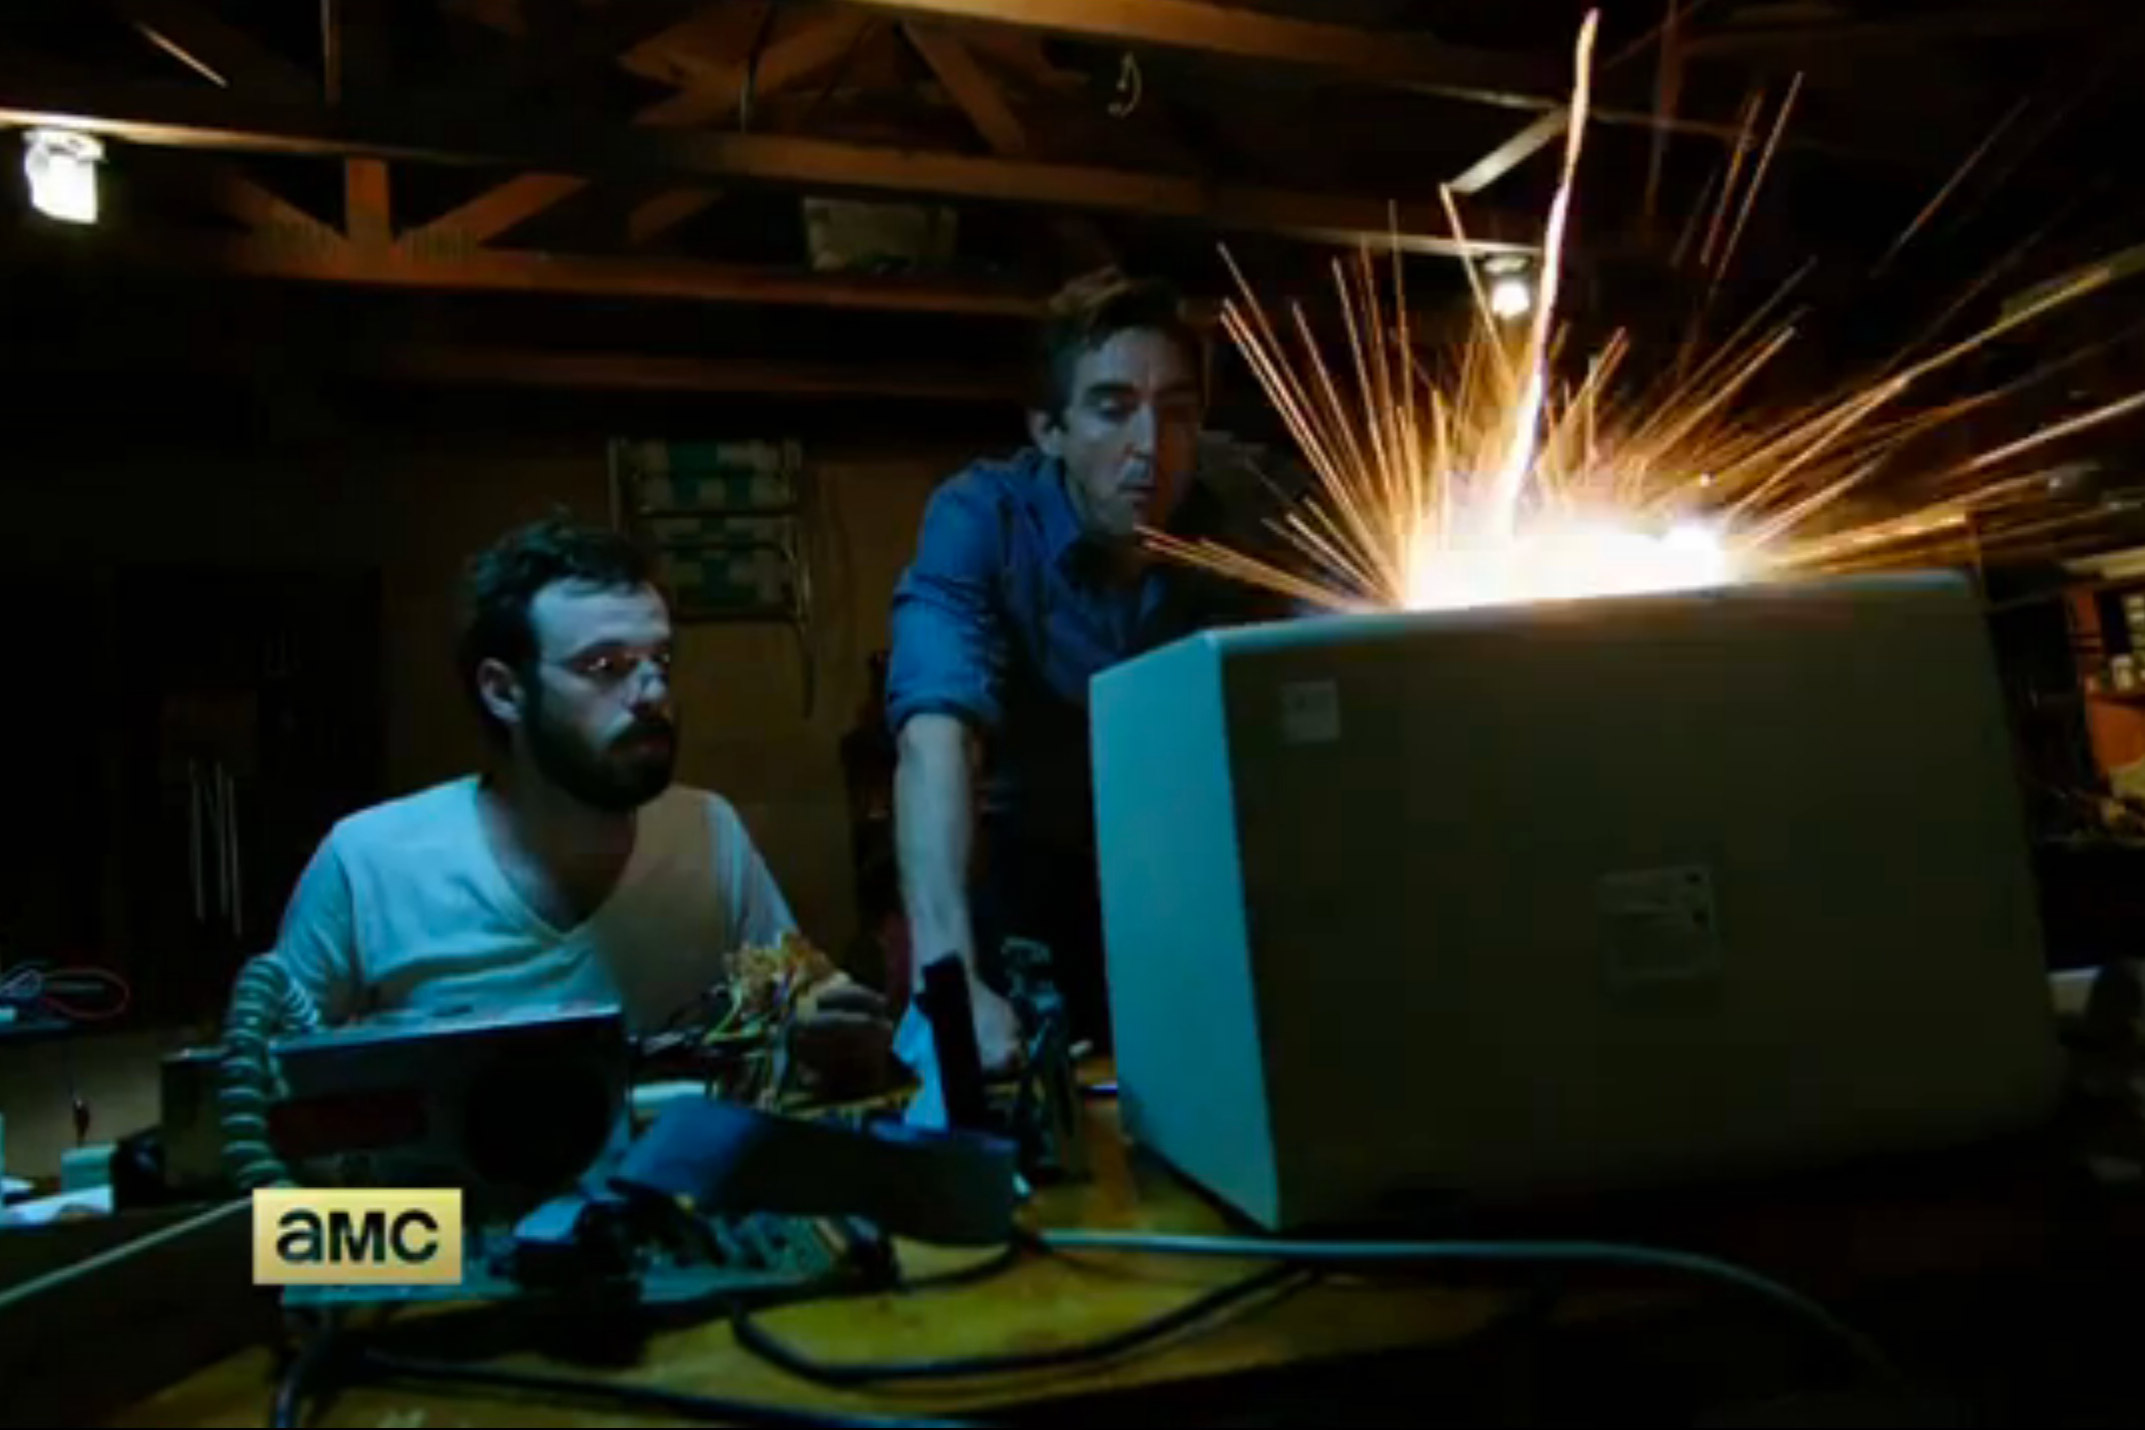 The Incredible True Story Behind AMC's Halt And Catch Fire ...